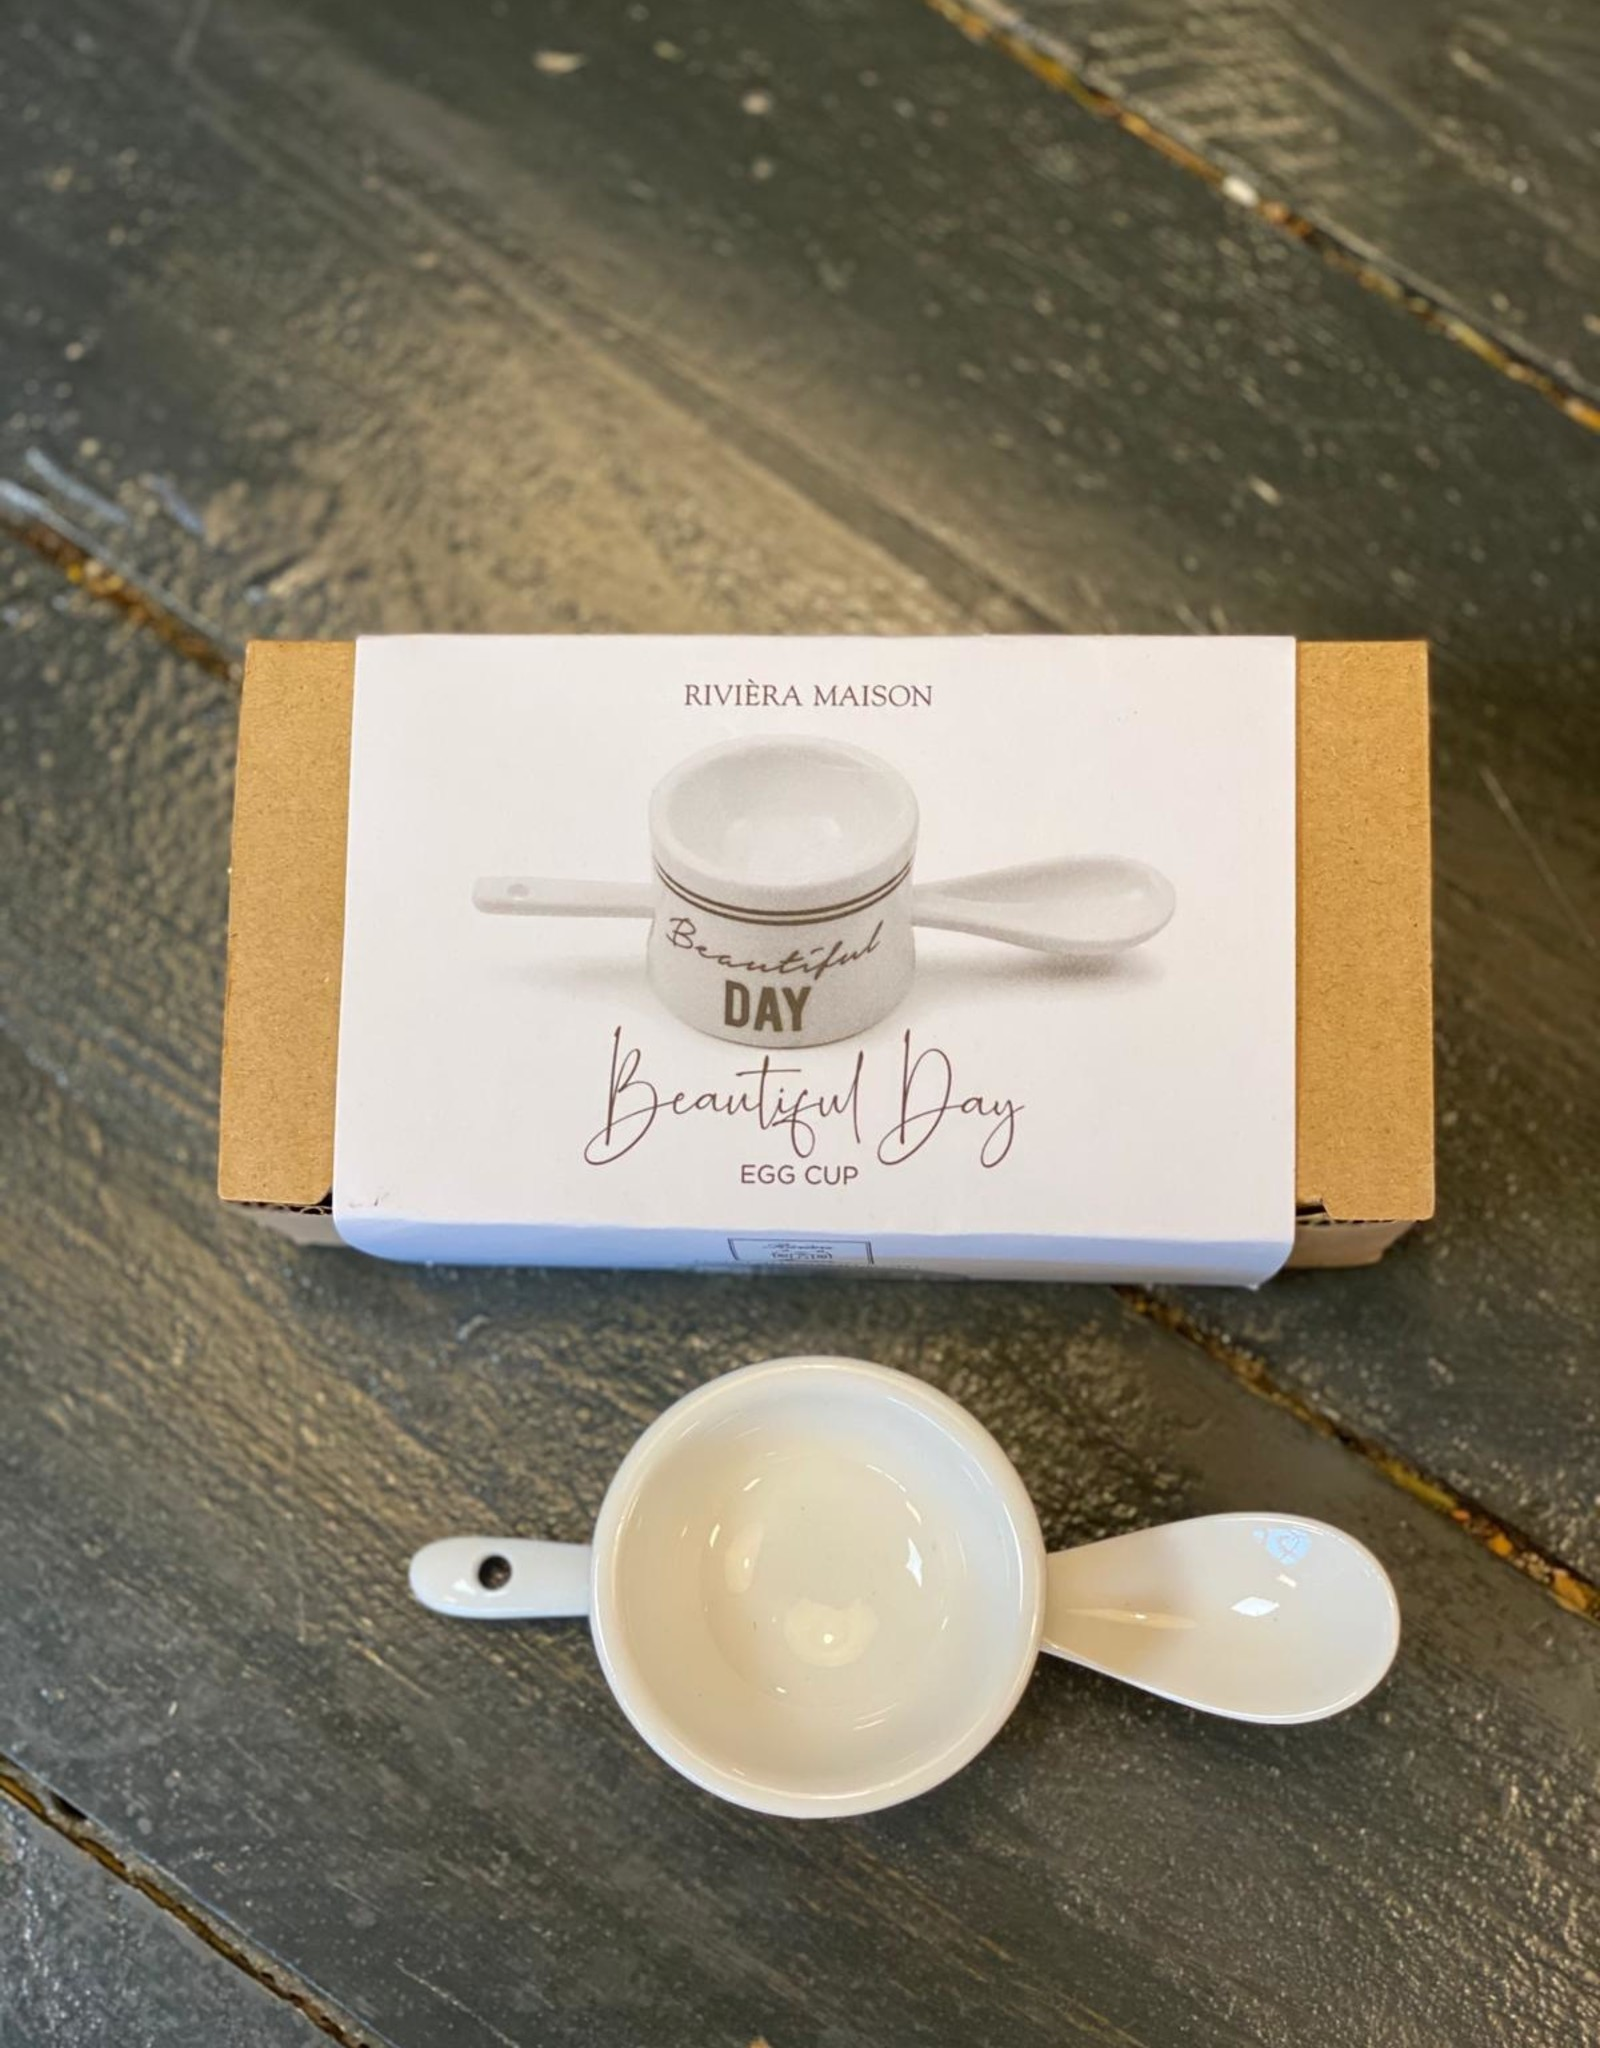 Riviera Maison Beautiful Day Egg Cup